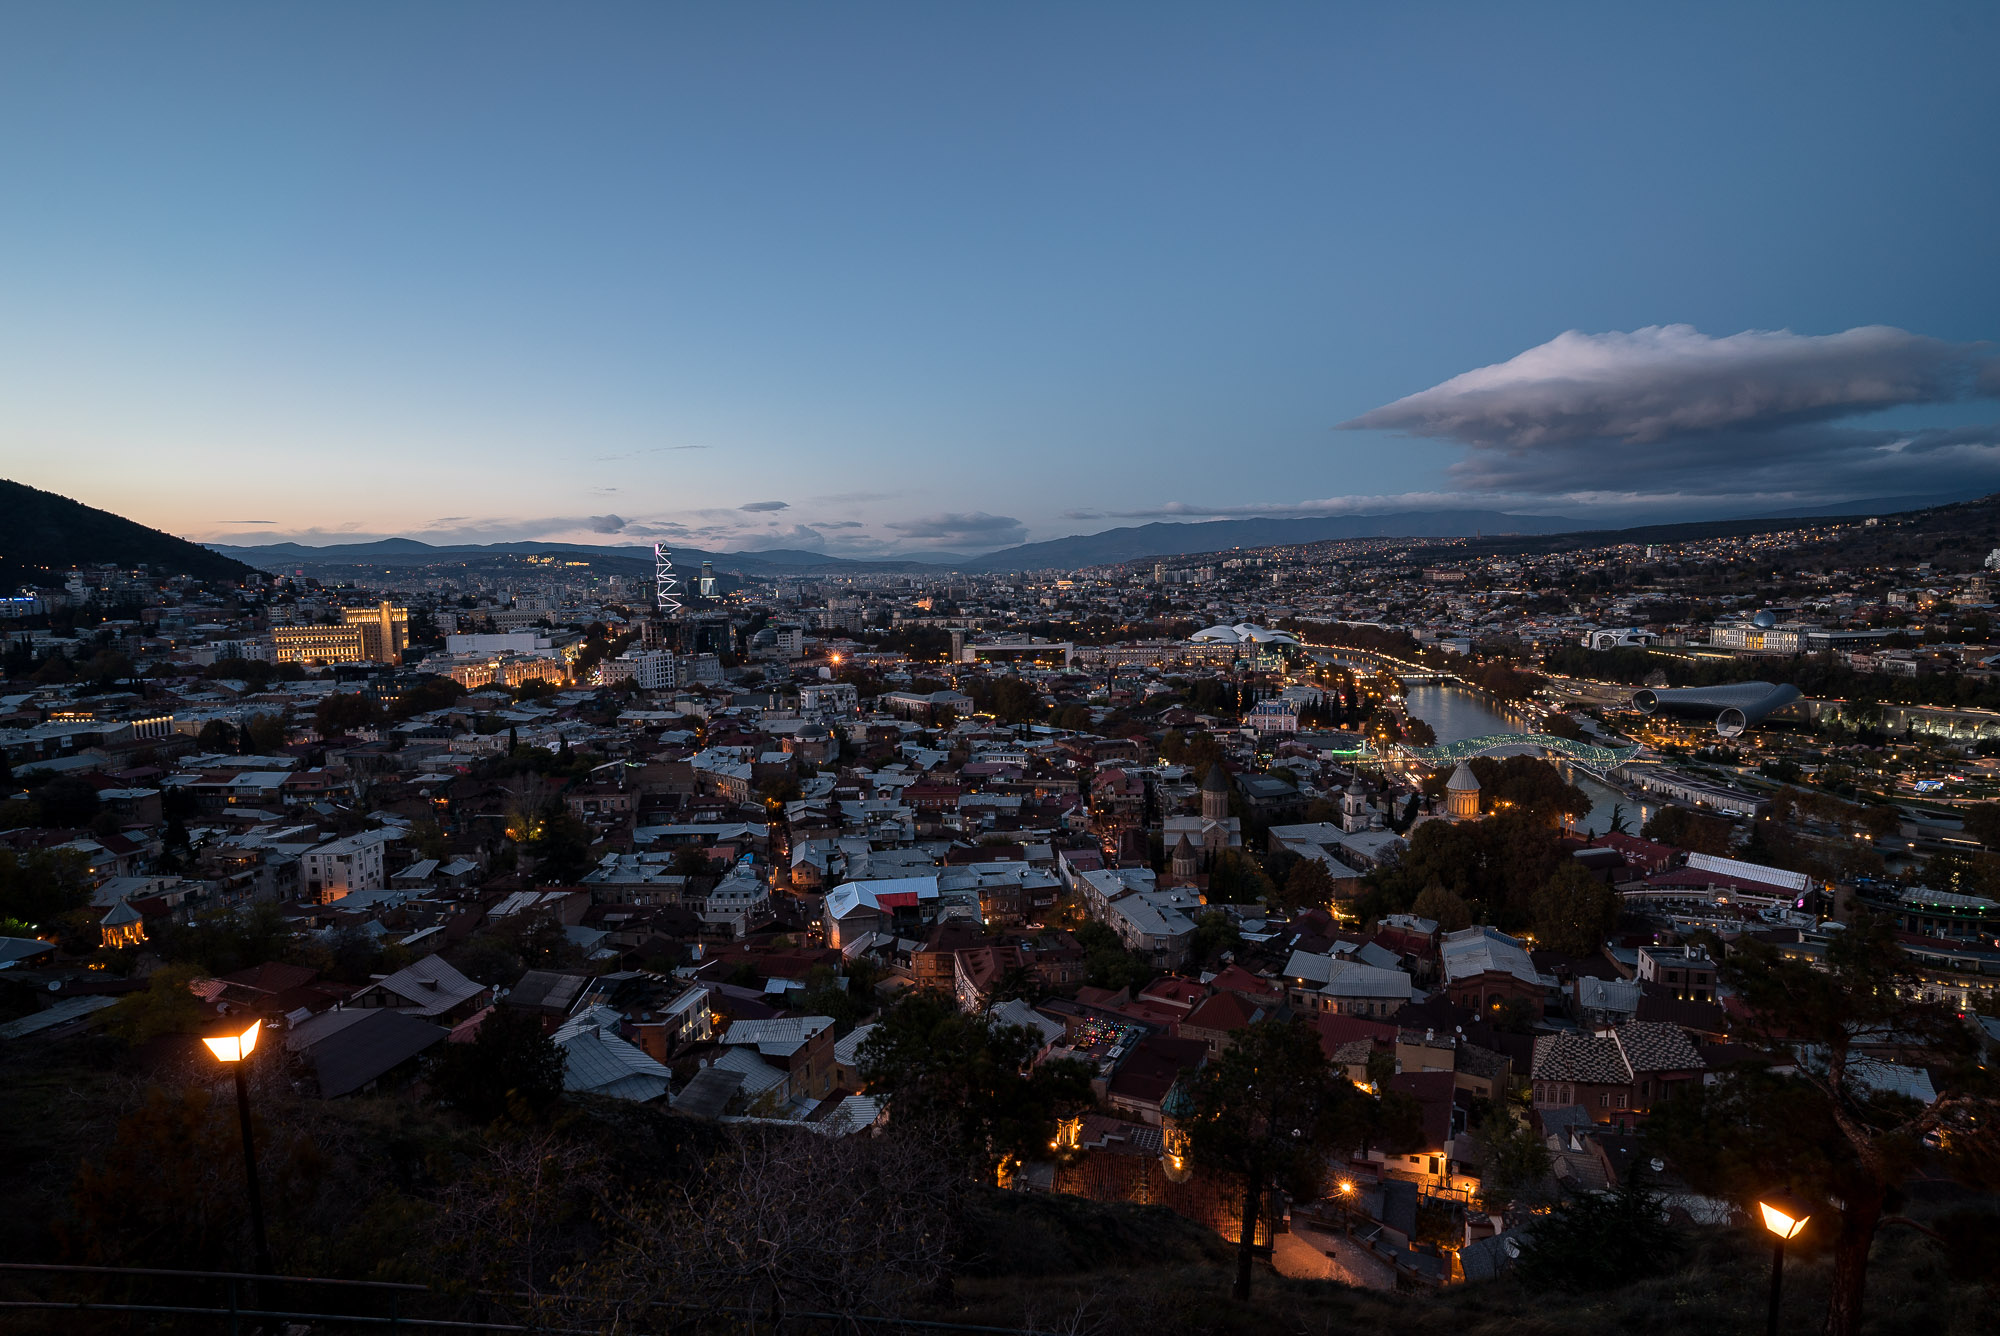 Tbilisi when the lights come on